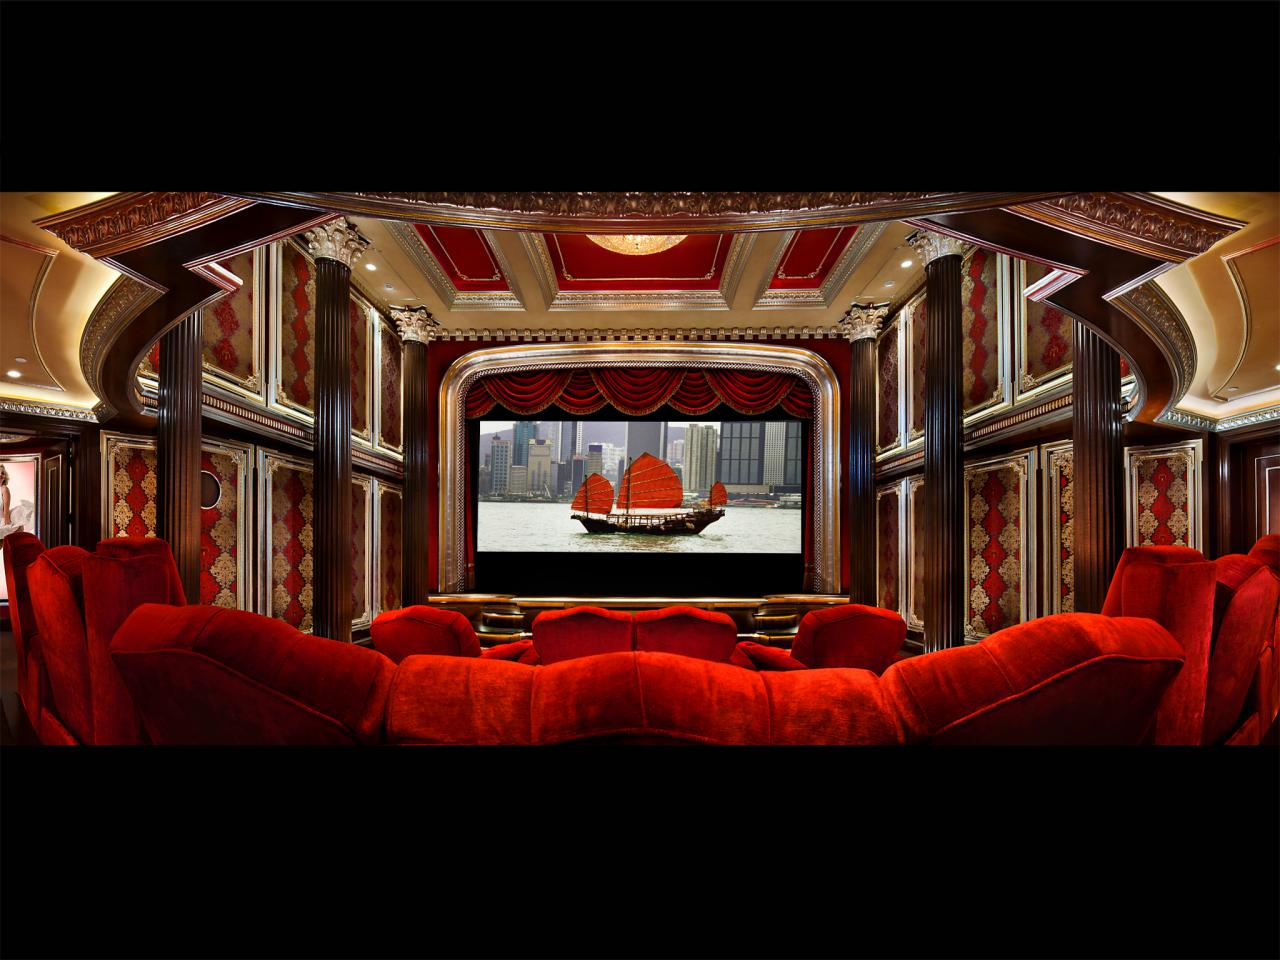 Home theater curtains pictures options tips ideas home remodeling ideas for basements Interior design ideas home theater